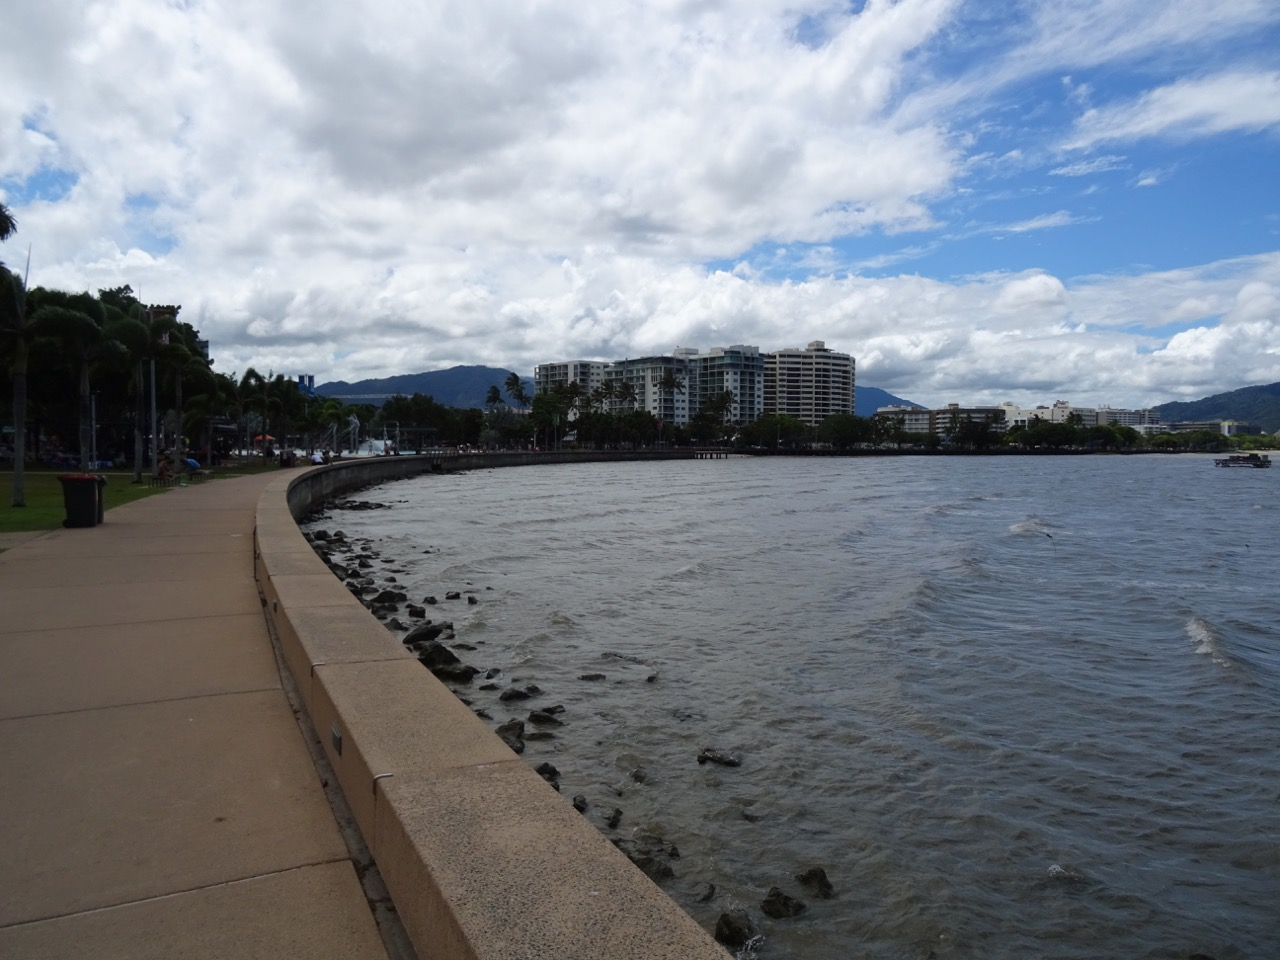 View of the Cairns waterfront